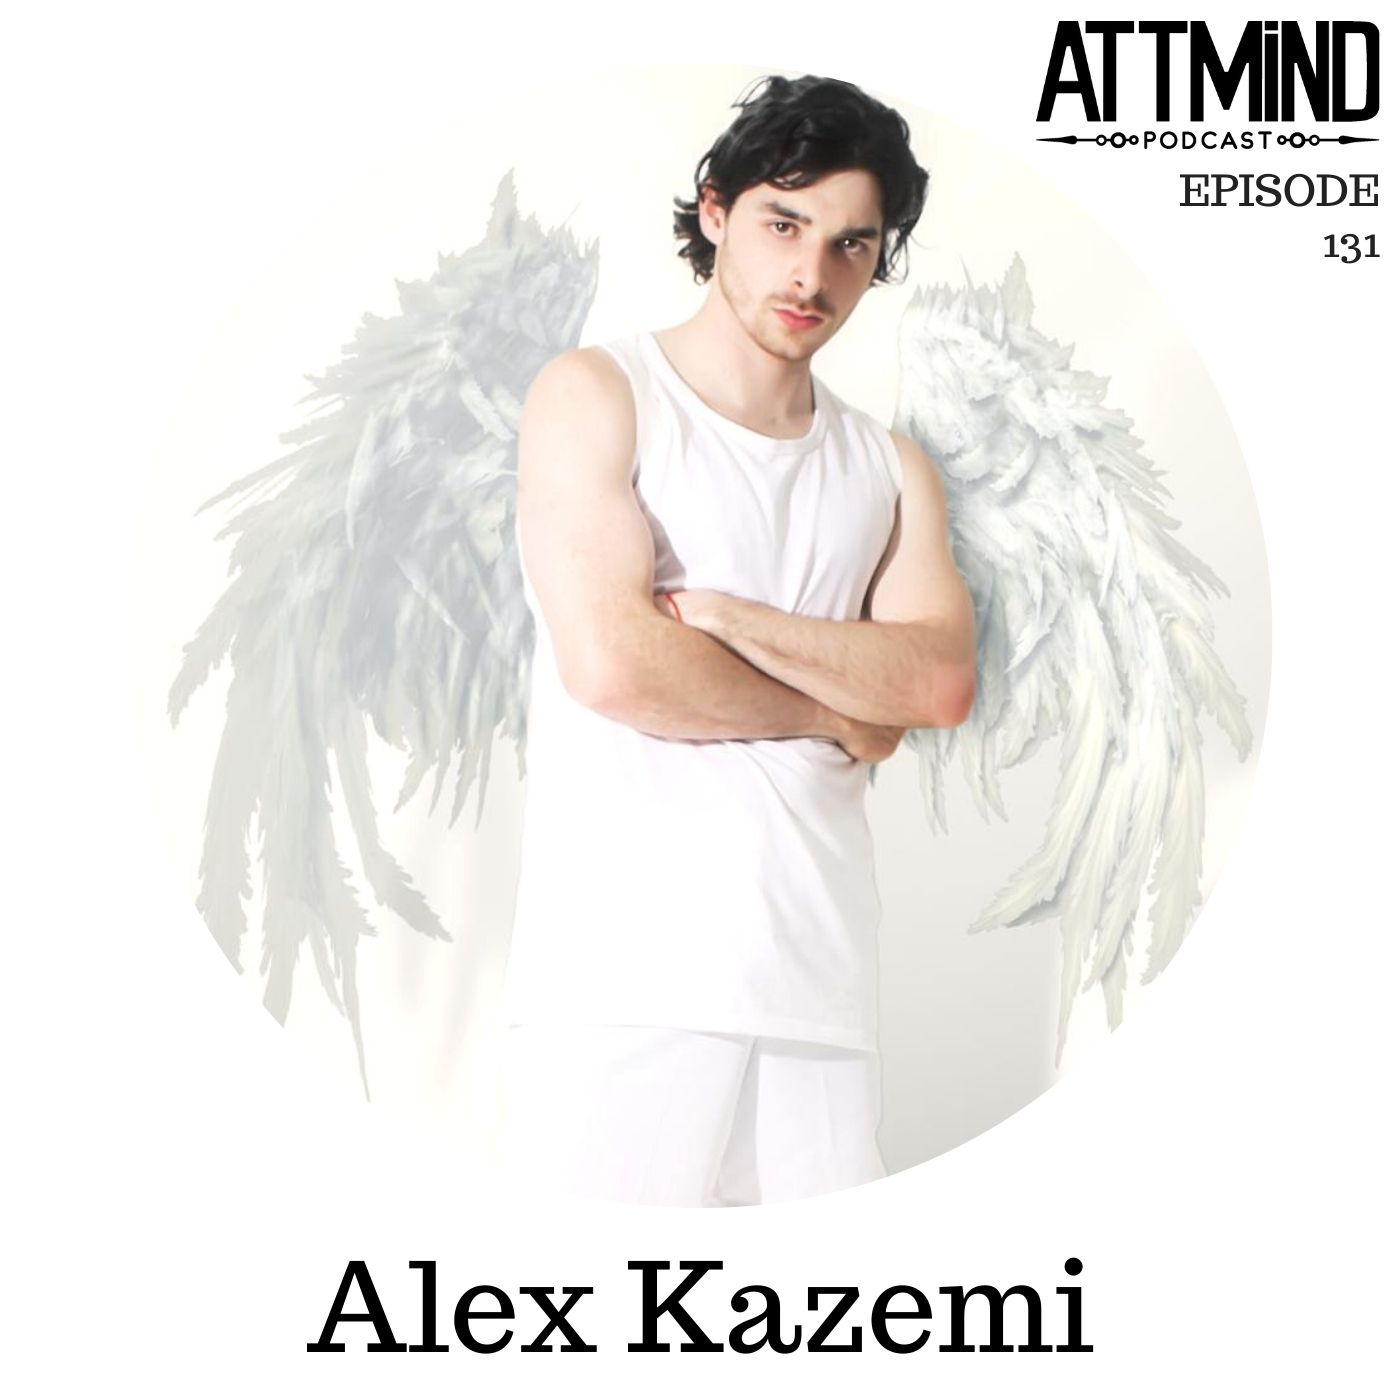 Bending Reality With Pop Magick | Alex Kazemi ~ ATTMind 131